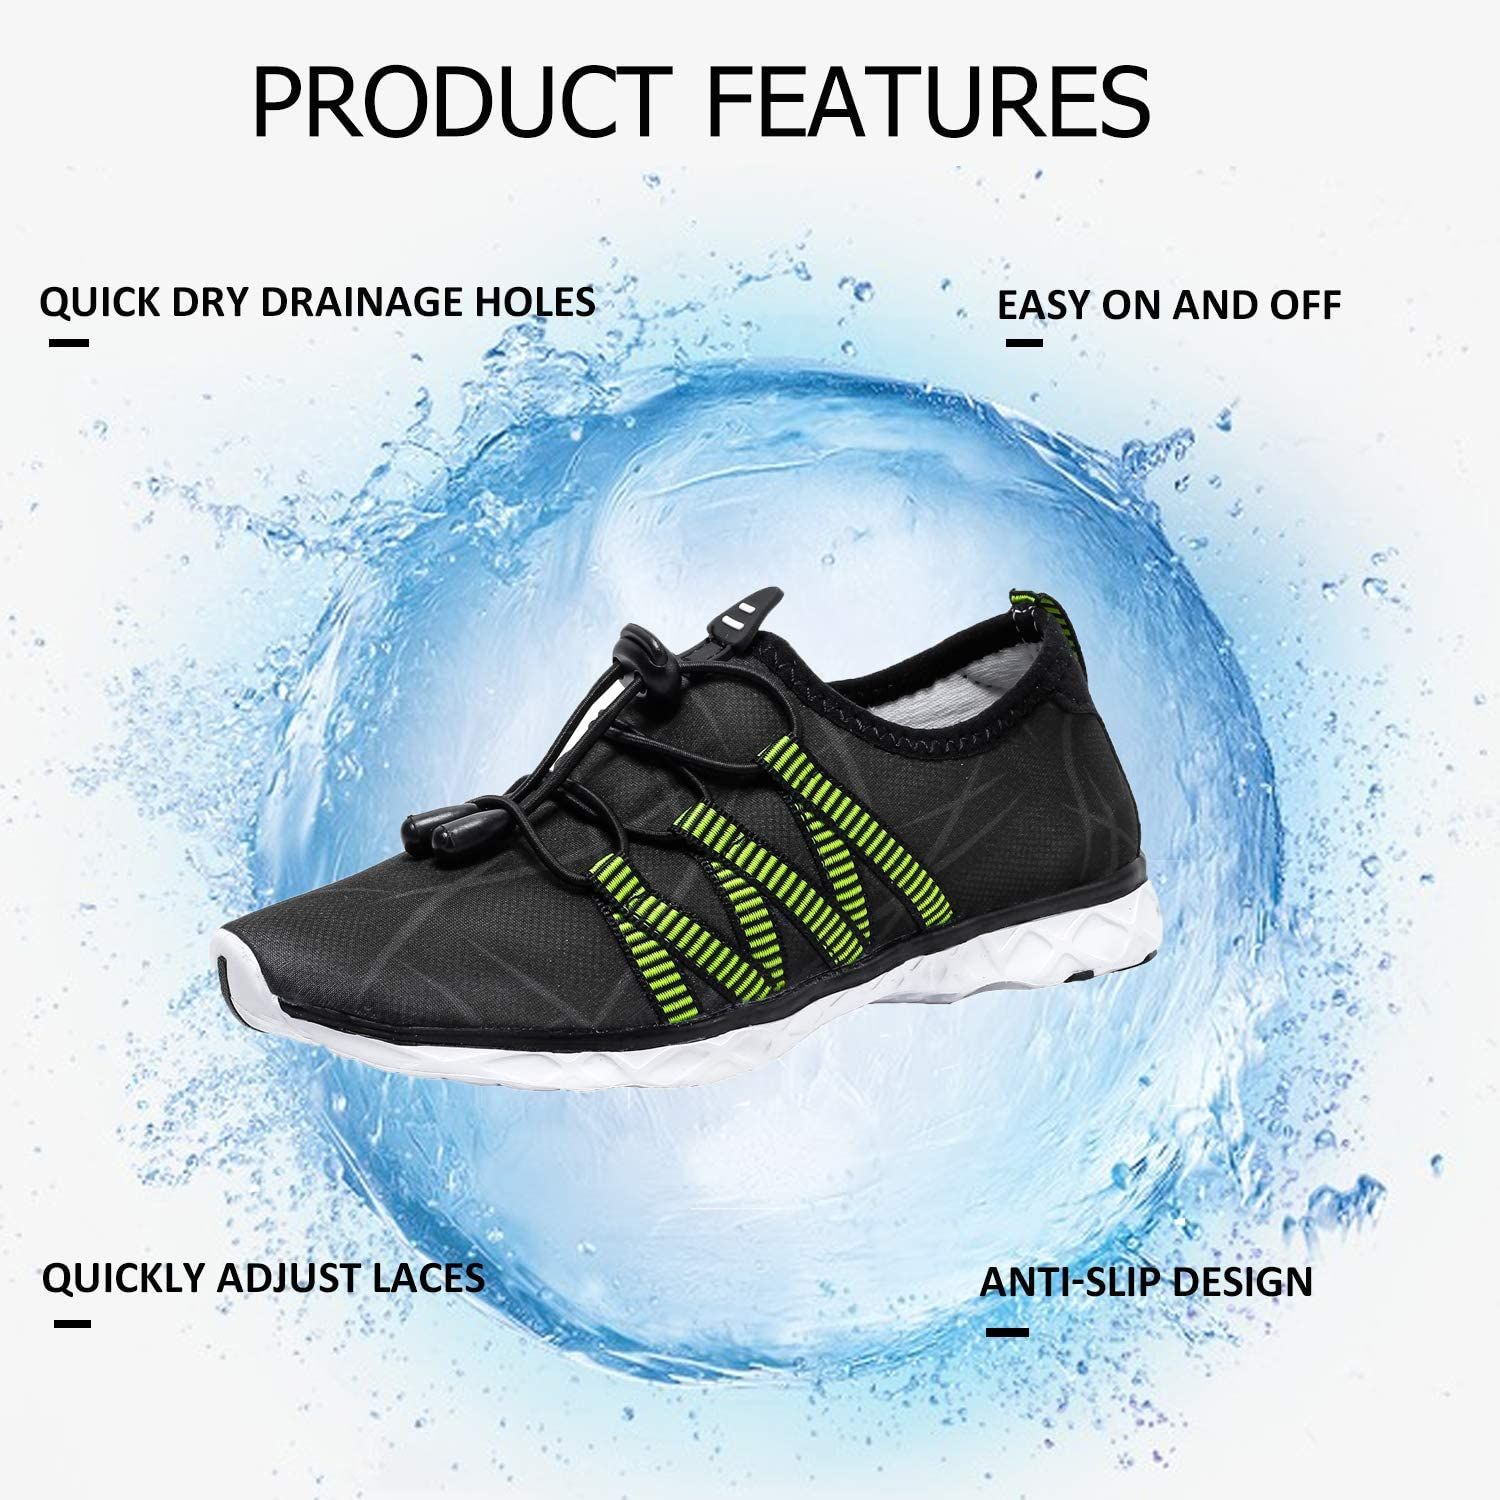 AMAWEI Boys Girls Water Shoes Kids Quick-Dry Lightweight Barefoot Beach Shoes Athletic Sneakers Aqua Sports Shoes for Swimming,Diving,Walking,Yoga